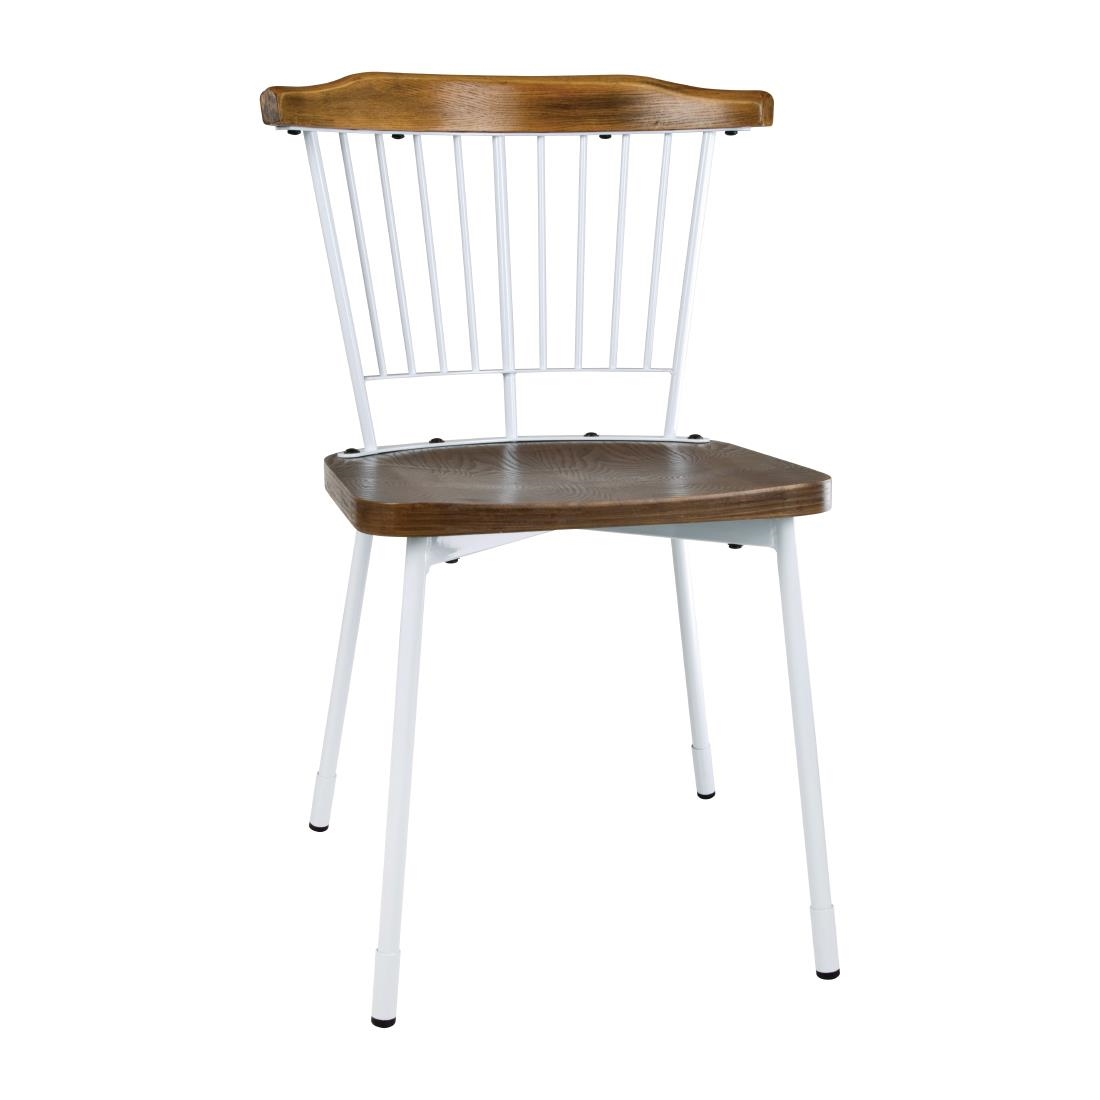 Image of Bolero Scandi Side Chairs White (Pack of 2) Pack of 2